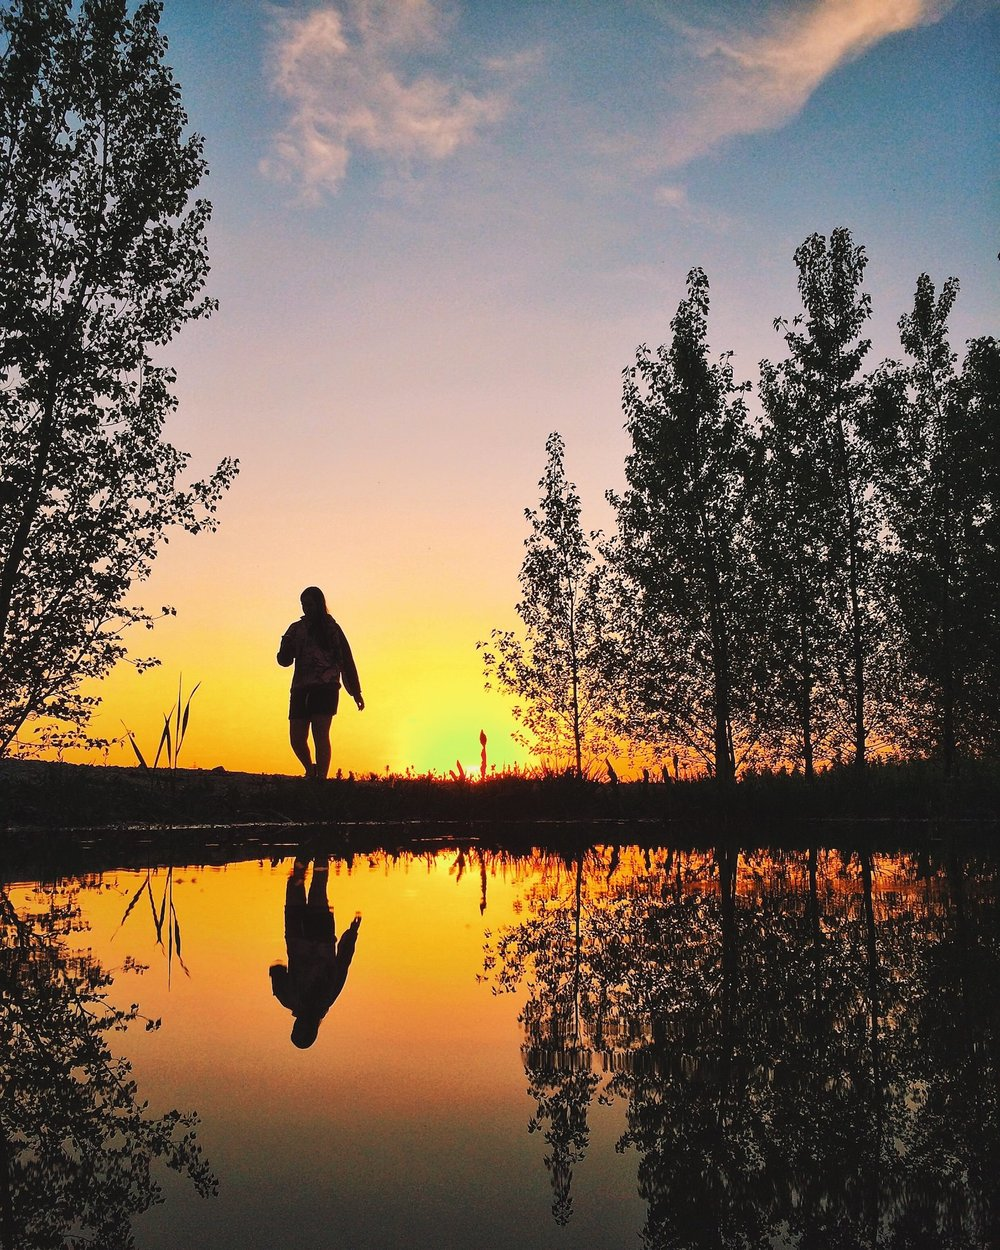 polar-visual-taylor-sheppard-photography-photo-video-motion-design-graphic-stonewall-winnipeg-manitoba-commercial-sunset-clouds-sky-nature-landscape-rubber-ducky-resort-warren-camping-lake-pond-reflection-puddlegram.jpeg